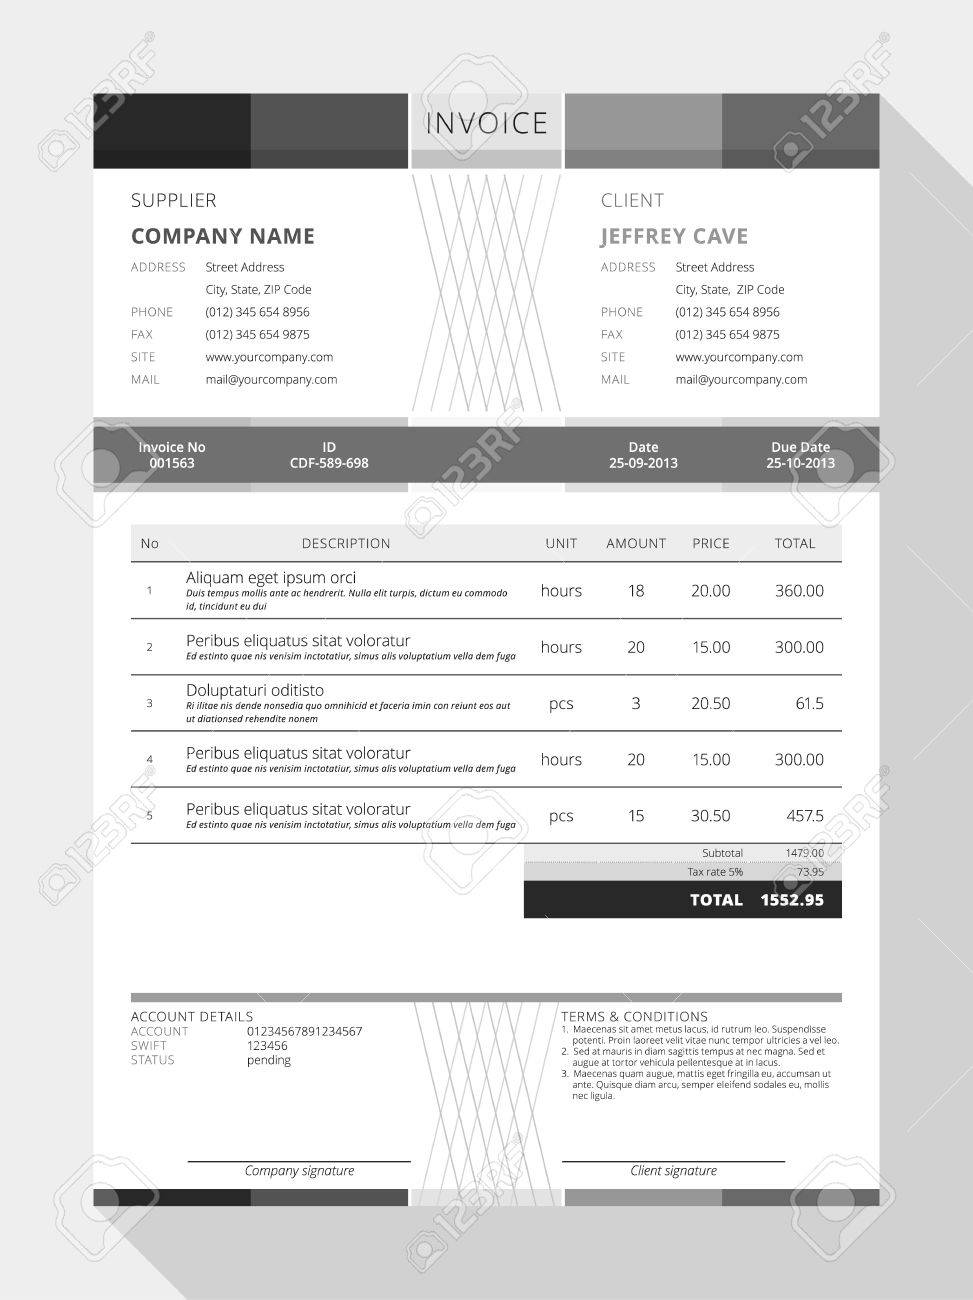 Picnictoimpeachus  Outstanding Design An Invoice  Professional Graphic Design Invoice  With Outstanding Vector Customizable Invoice Form Template Design Vector   Design An Invoice With Lovely Online Invoice Format Also The Best Invoice Software In Addition Zoho Invoice Free Download And Msrp Vs Invoice Vs True Market Value As Well As Match Invoice Additionally How To Word An Invoice From Happytomco With Picnictoimpeachus  Outstanding Design An Invoice  Professional Graphic Design Invoice  With Lovely Vector Customizable Invoice Form Template Design Vector   Design An Invoice And Outstanding Online Invoice Format Also The Best Invoice Software In Addition Zoho Invoice Free Download From Happytomco